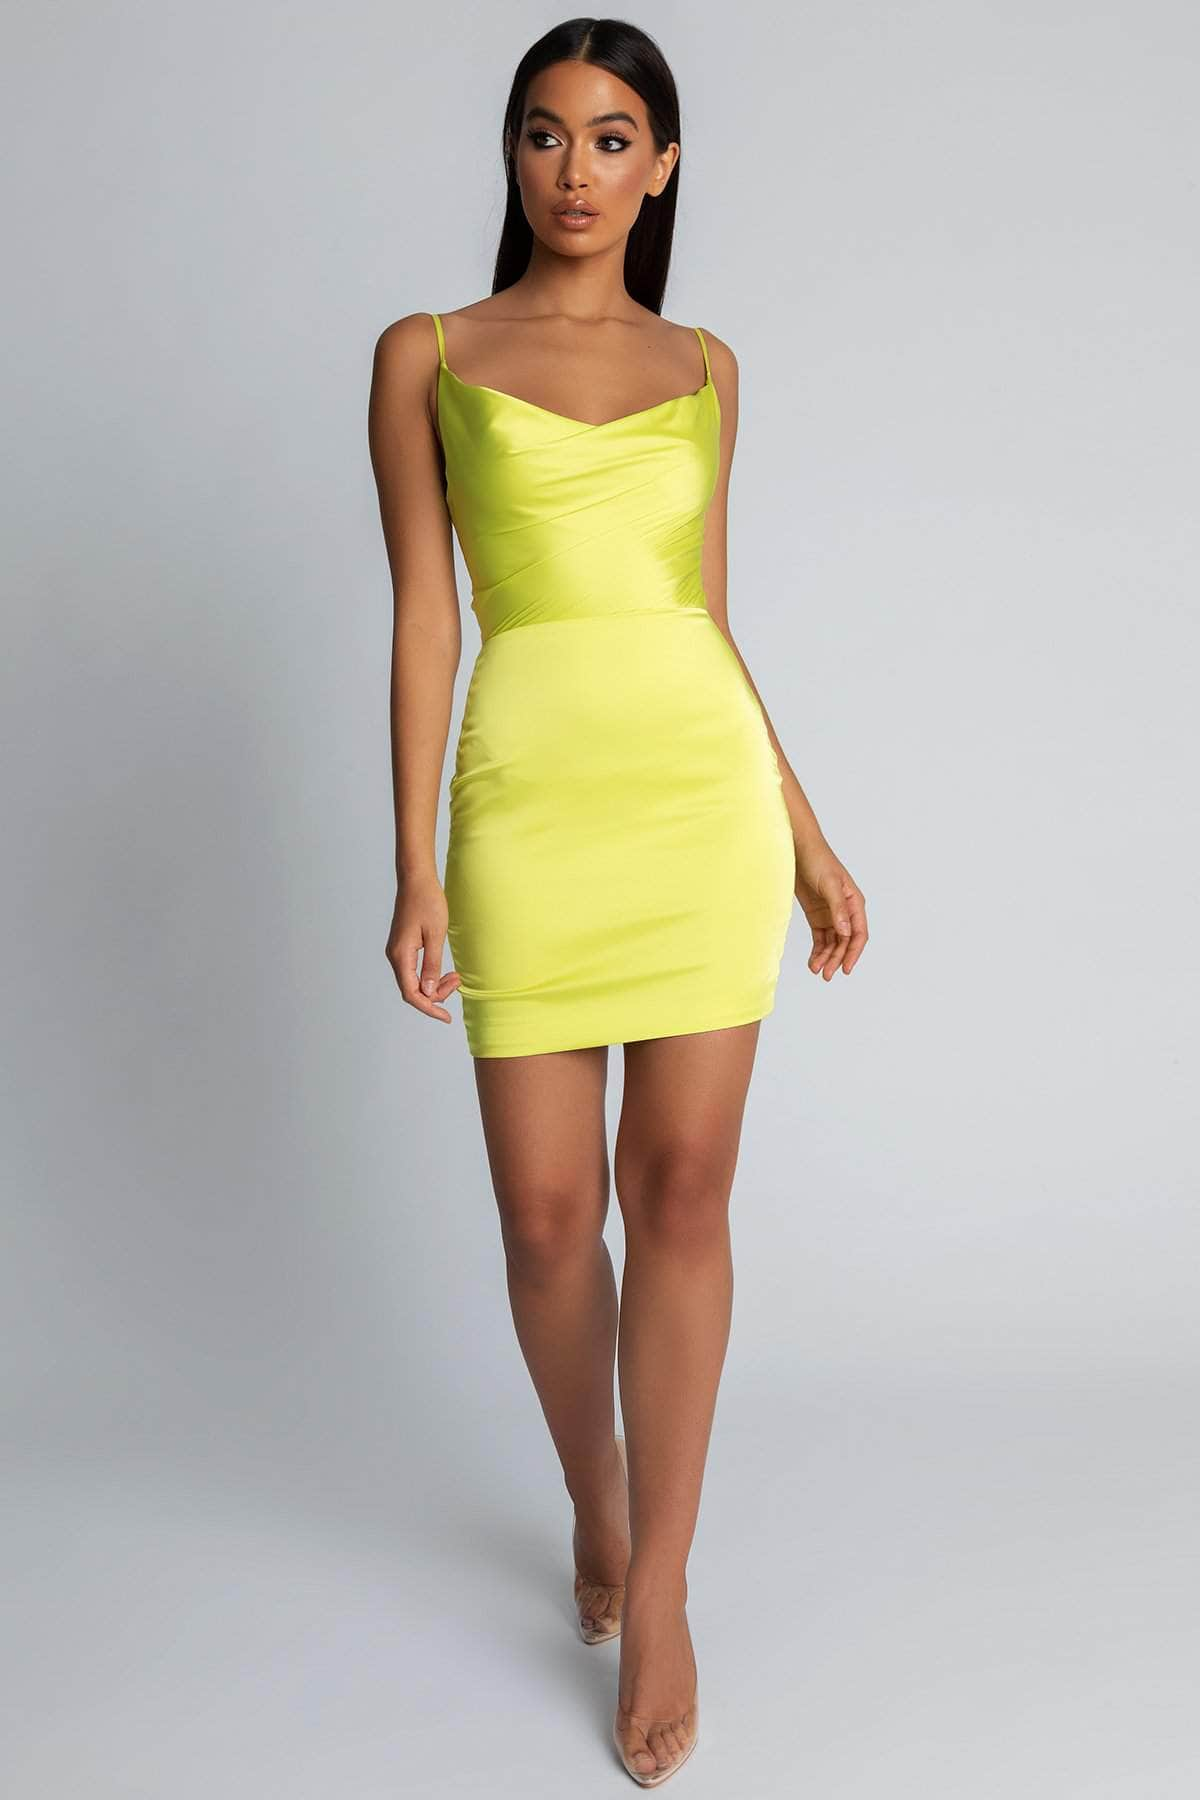 379979163a Zoey Cowl Neck Strappy Back Mini Dress - Lime Green - MESHKI